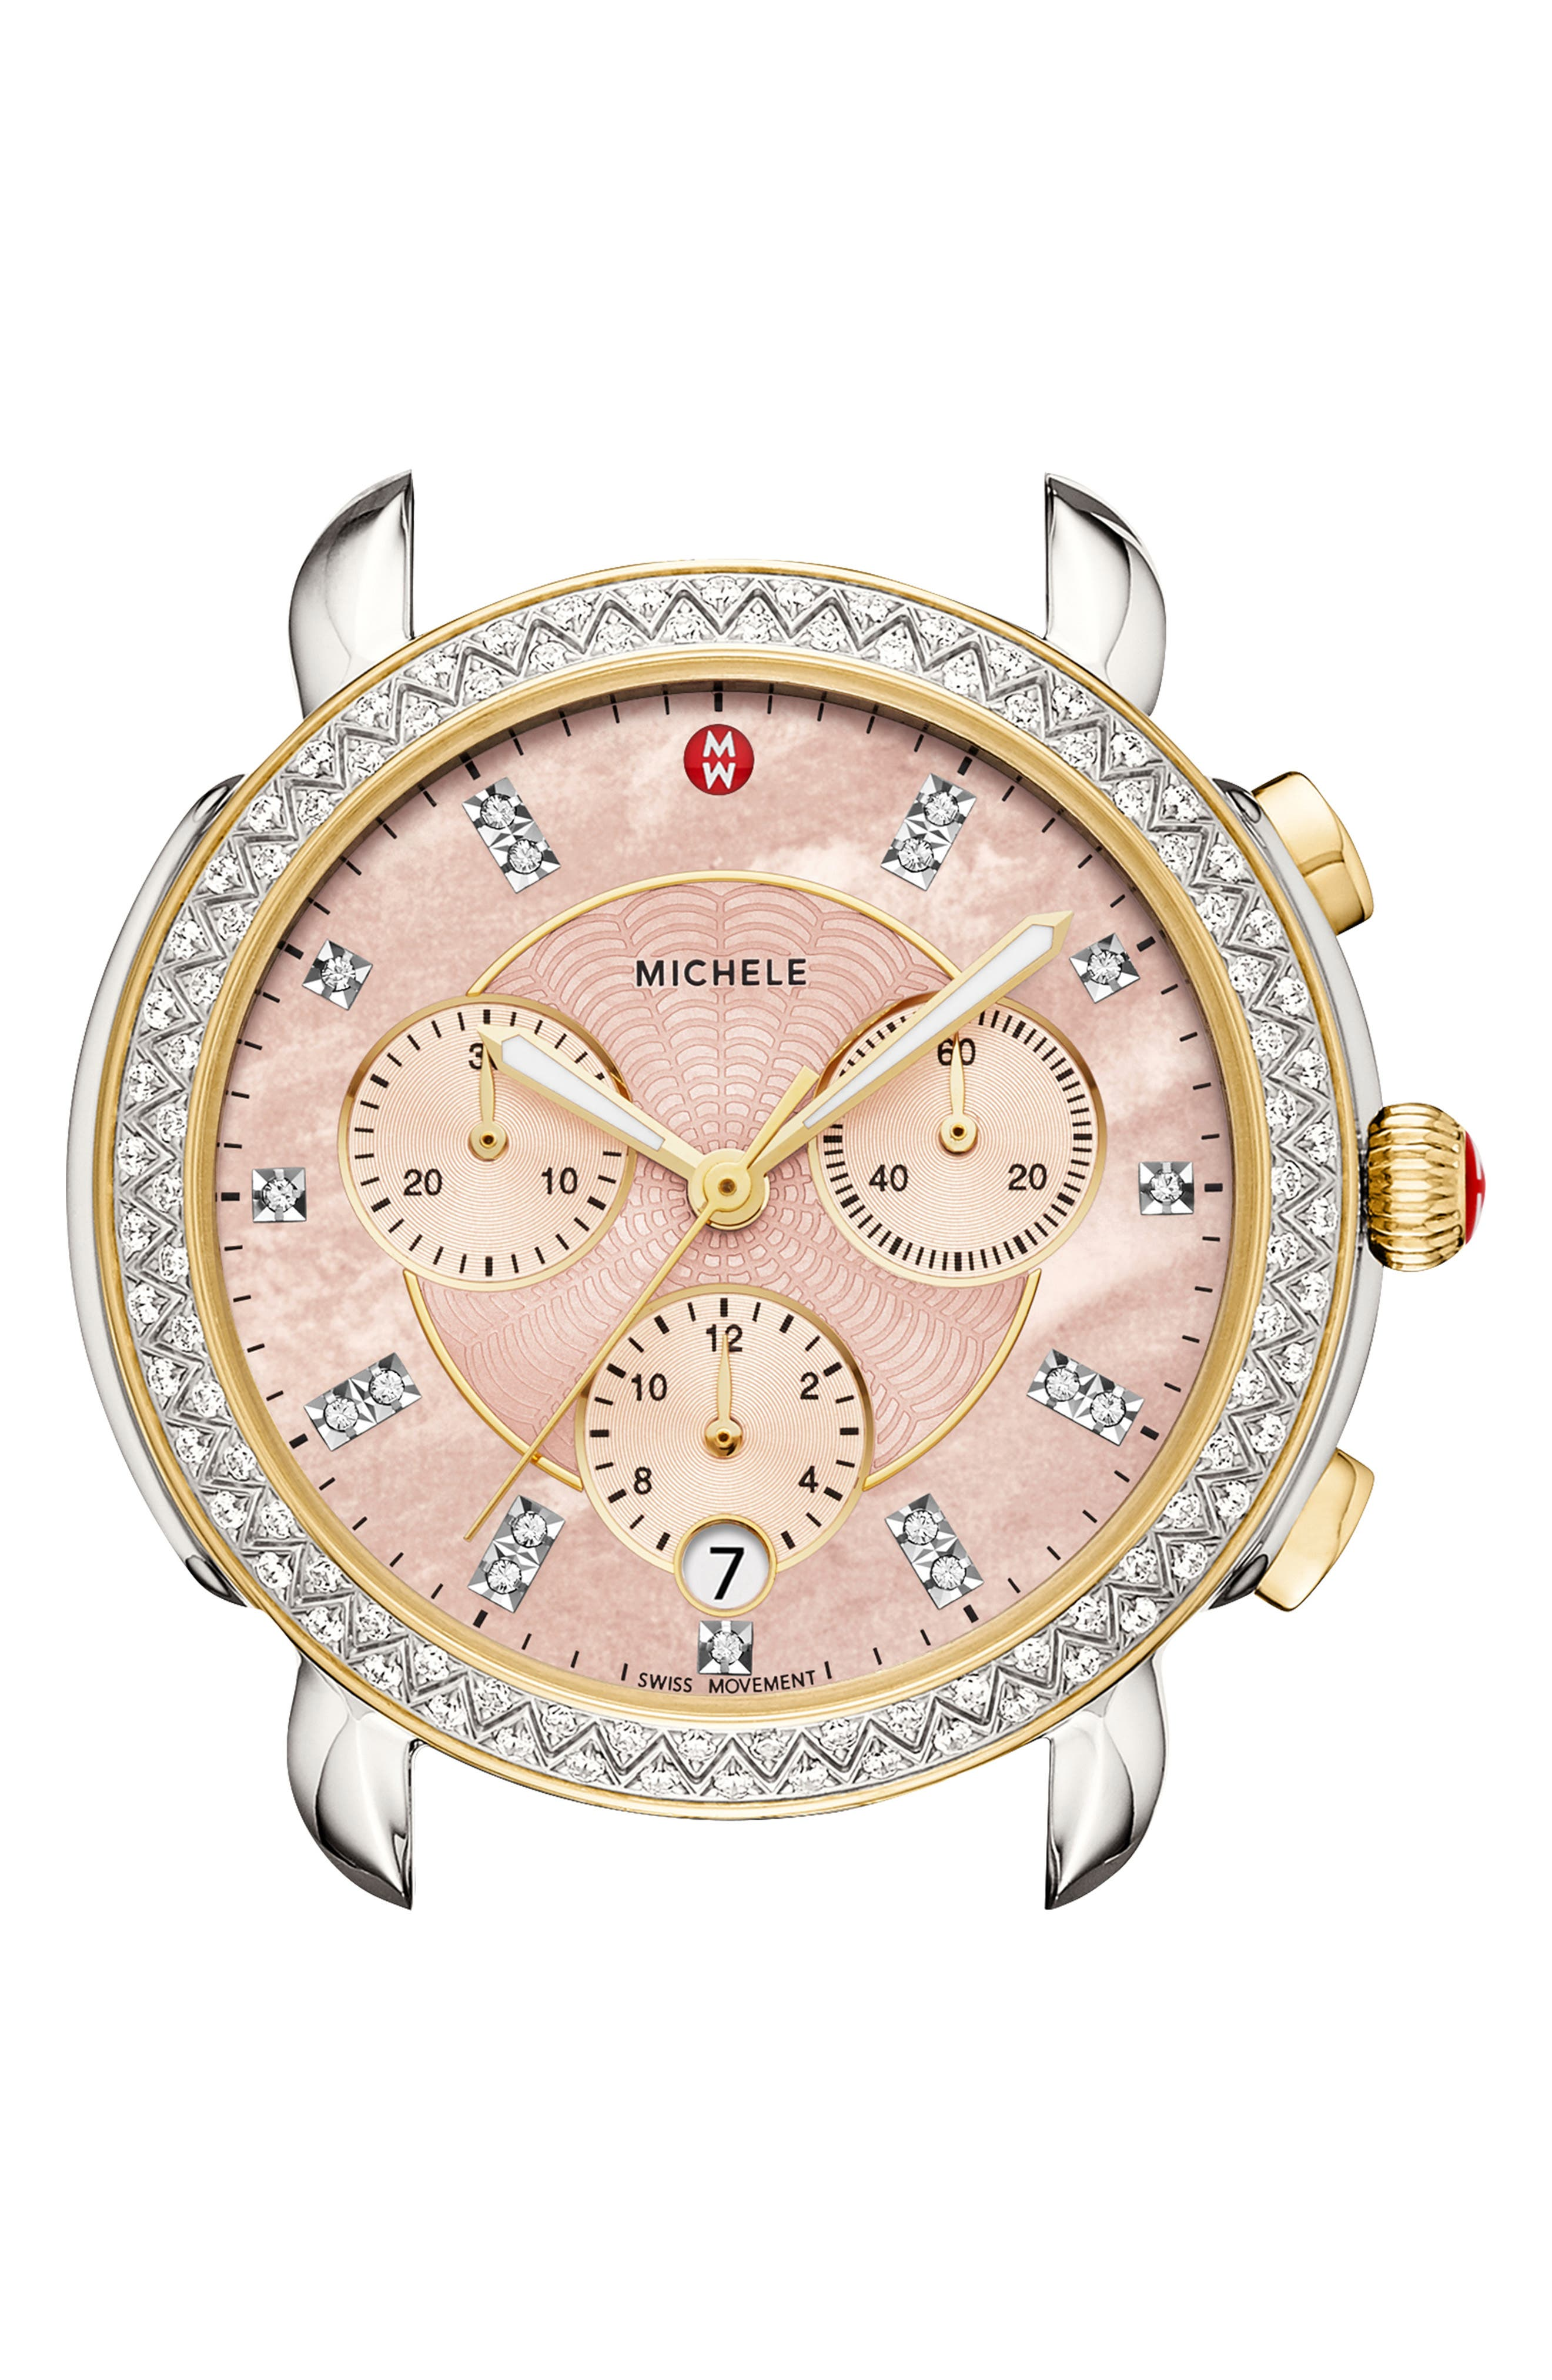 MICHELE, Sidney Chrono Diamond Diamond Dial Watch Case, 38mm, Main thumbnail 1, color, GOLD/ SILVER/ DESERT ROSE MOP